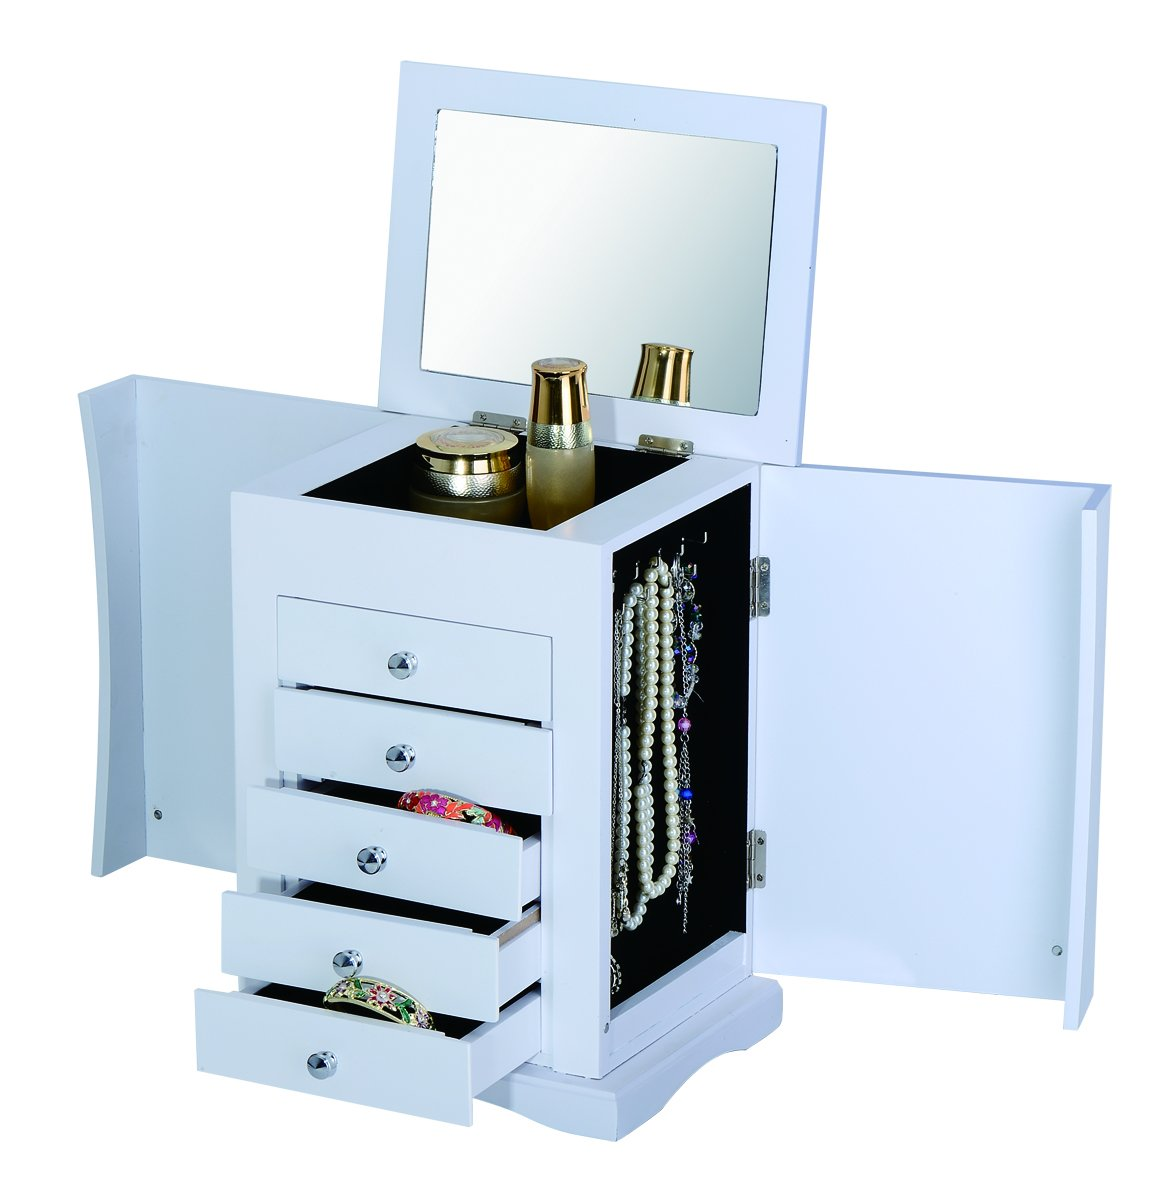 Table Top/Counter Top Jewellery Chest with Make-up Mirror (White) ViscoLogic WO-6188